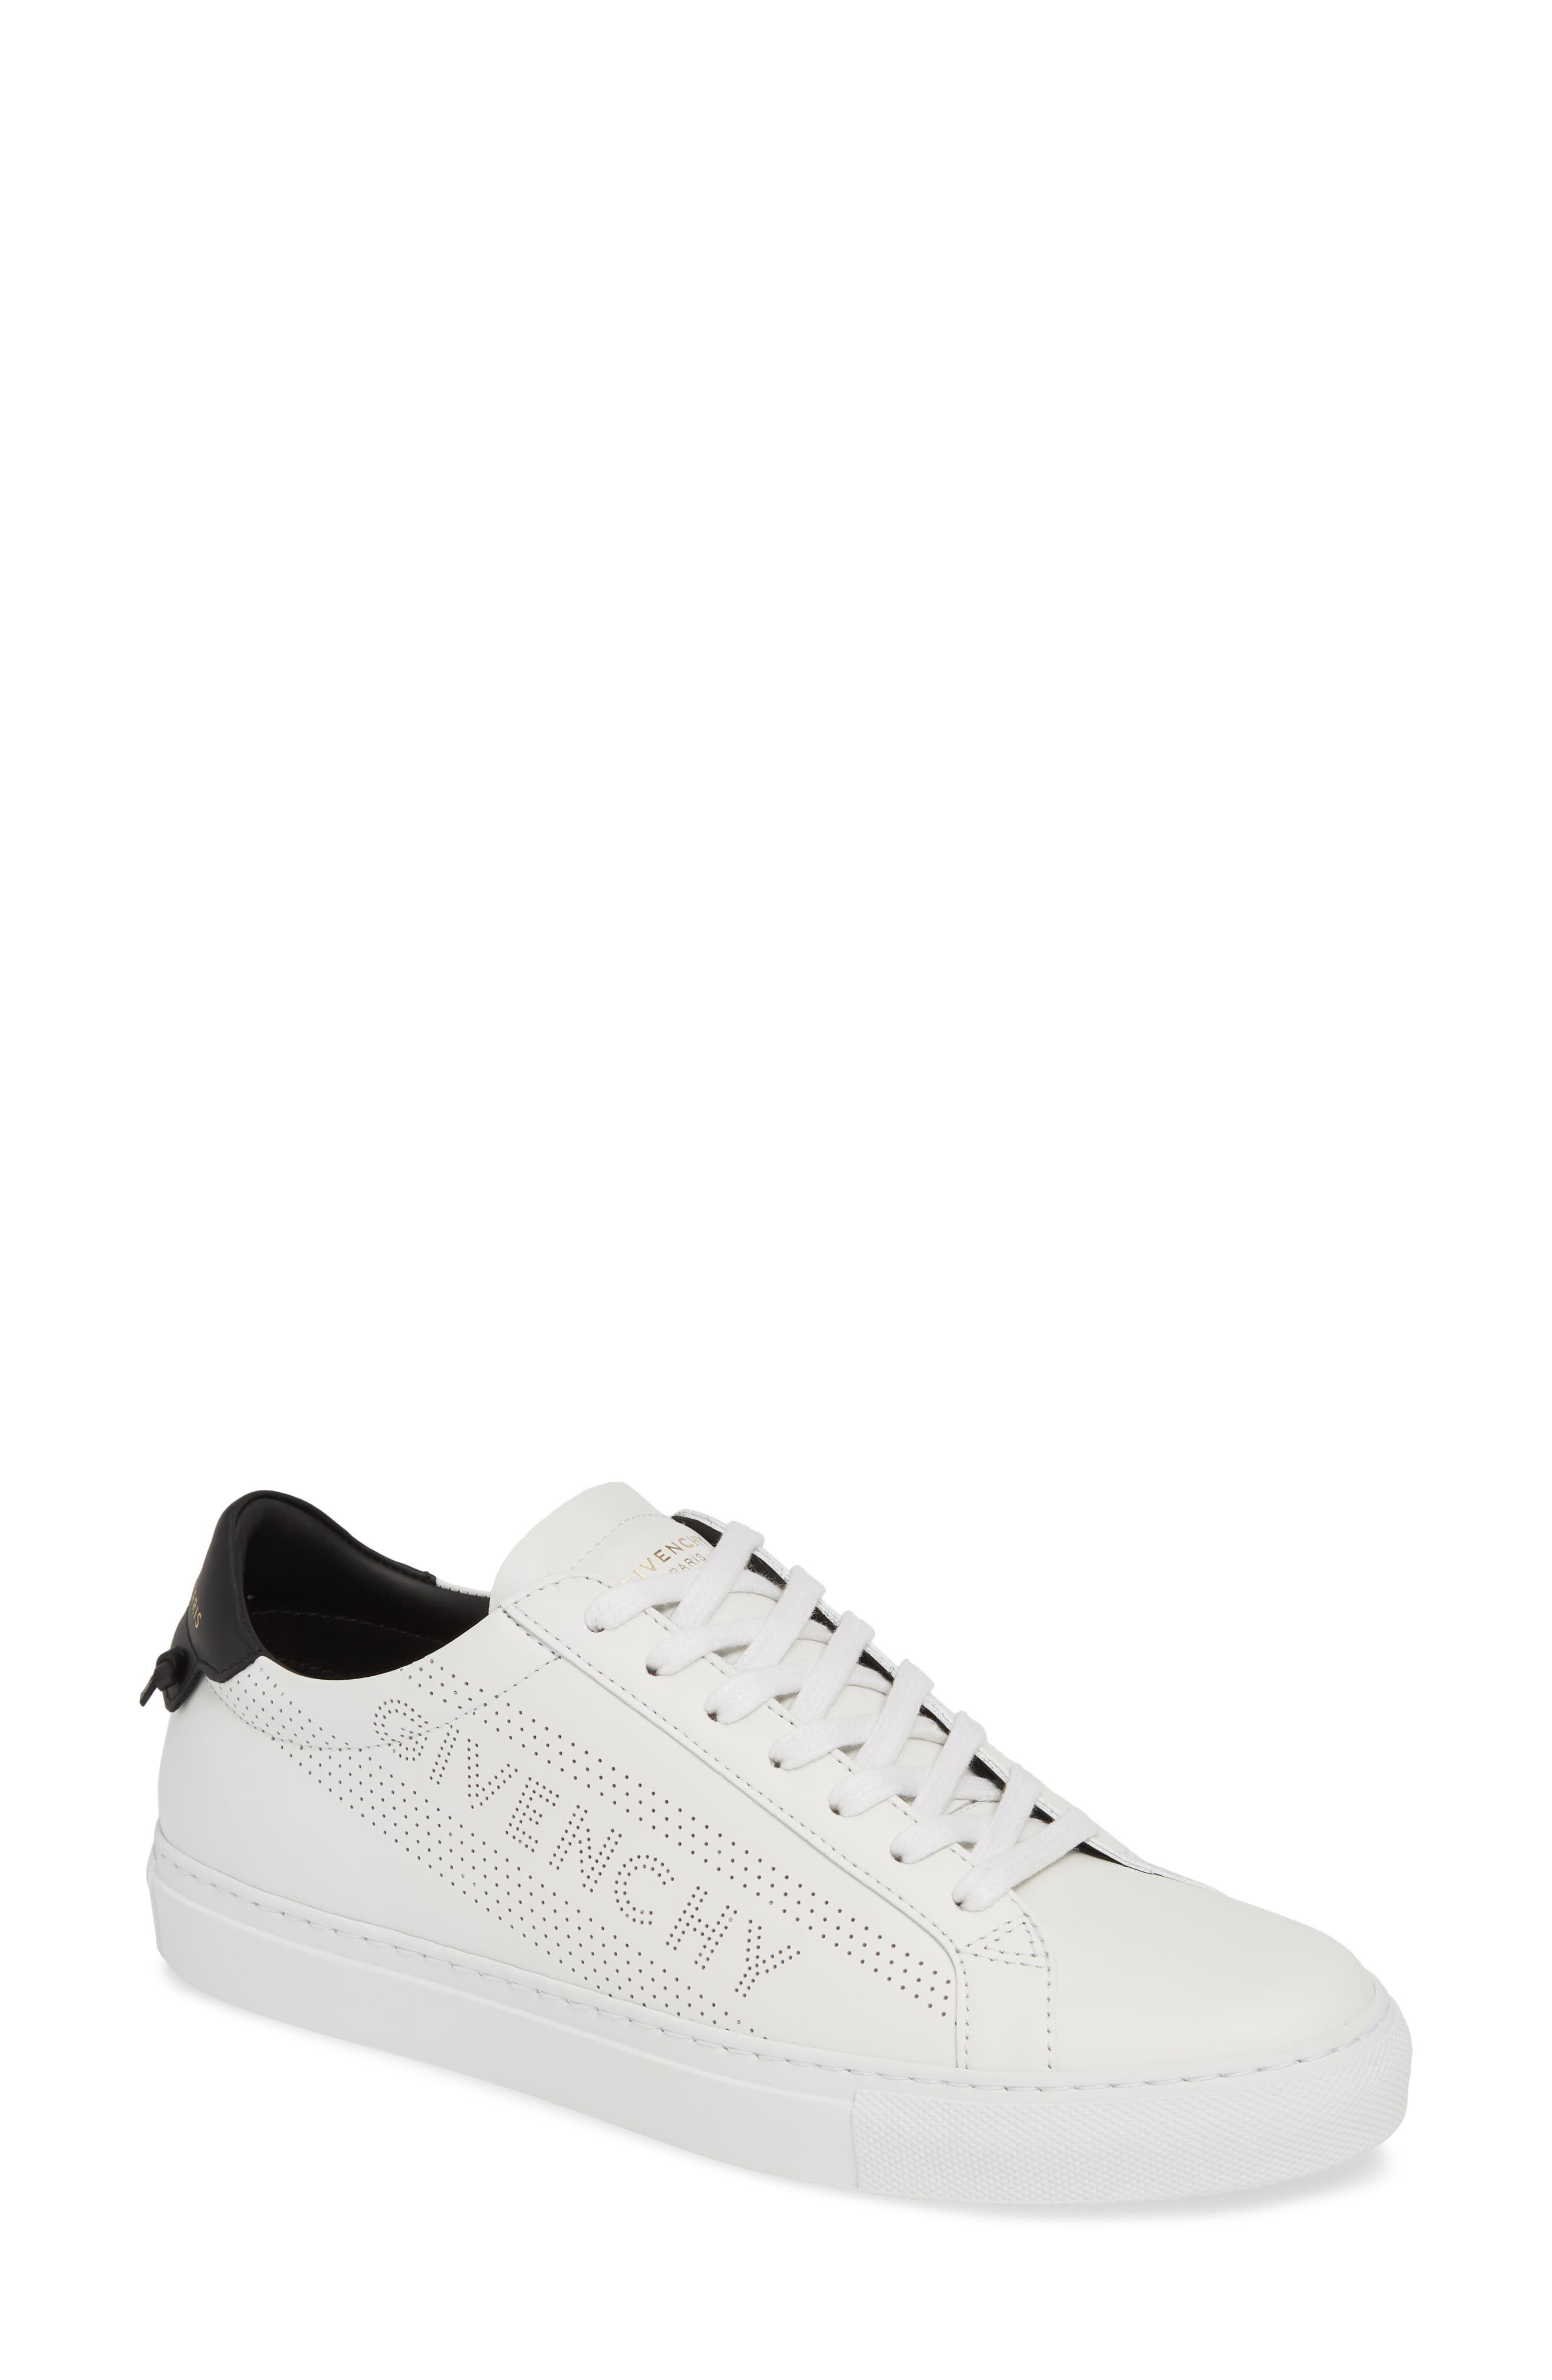 Urban Street Perforated Sneaker, Main, color, WHITE/ BLACK